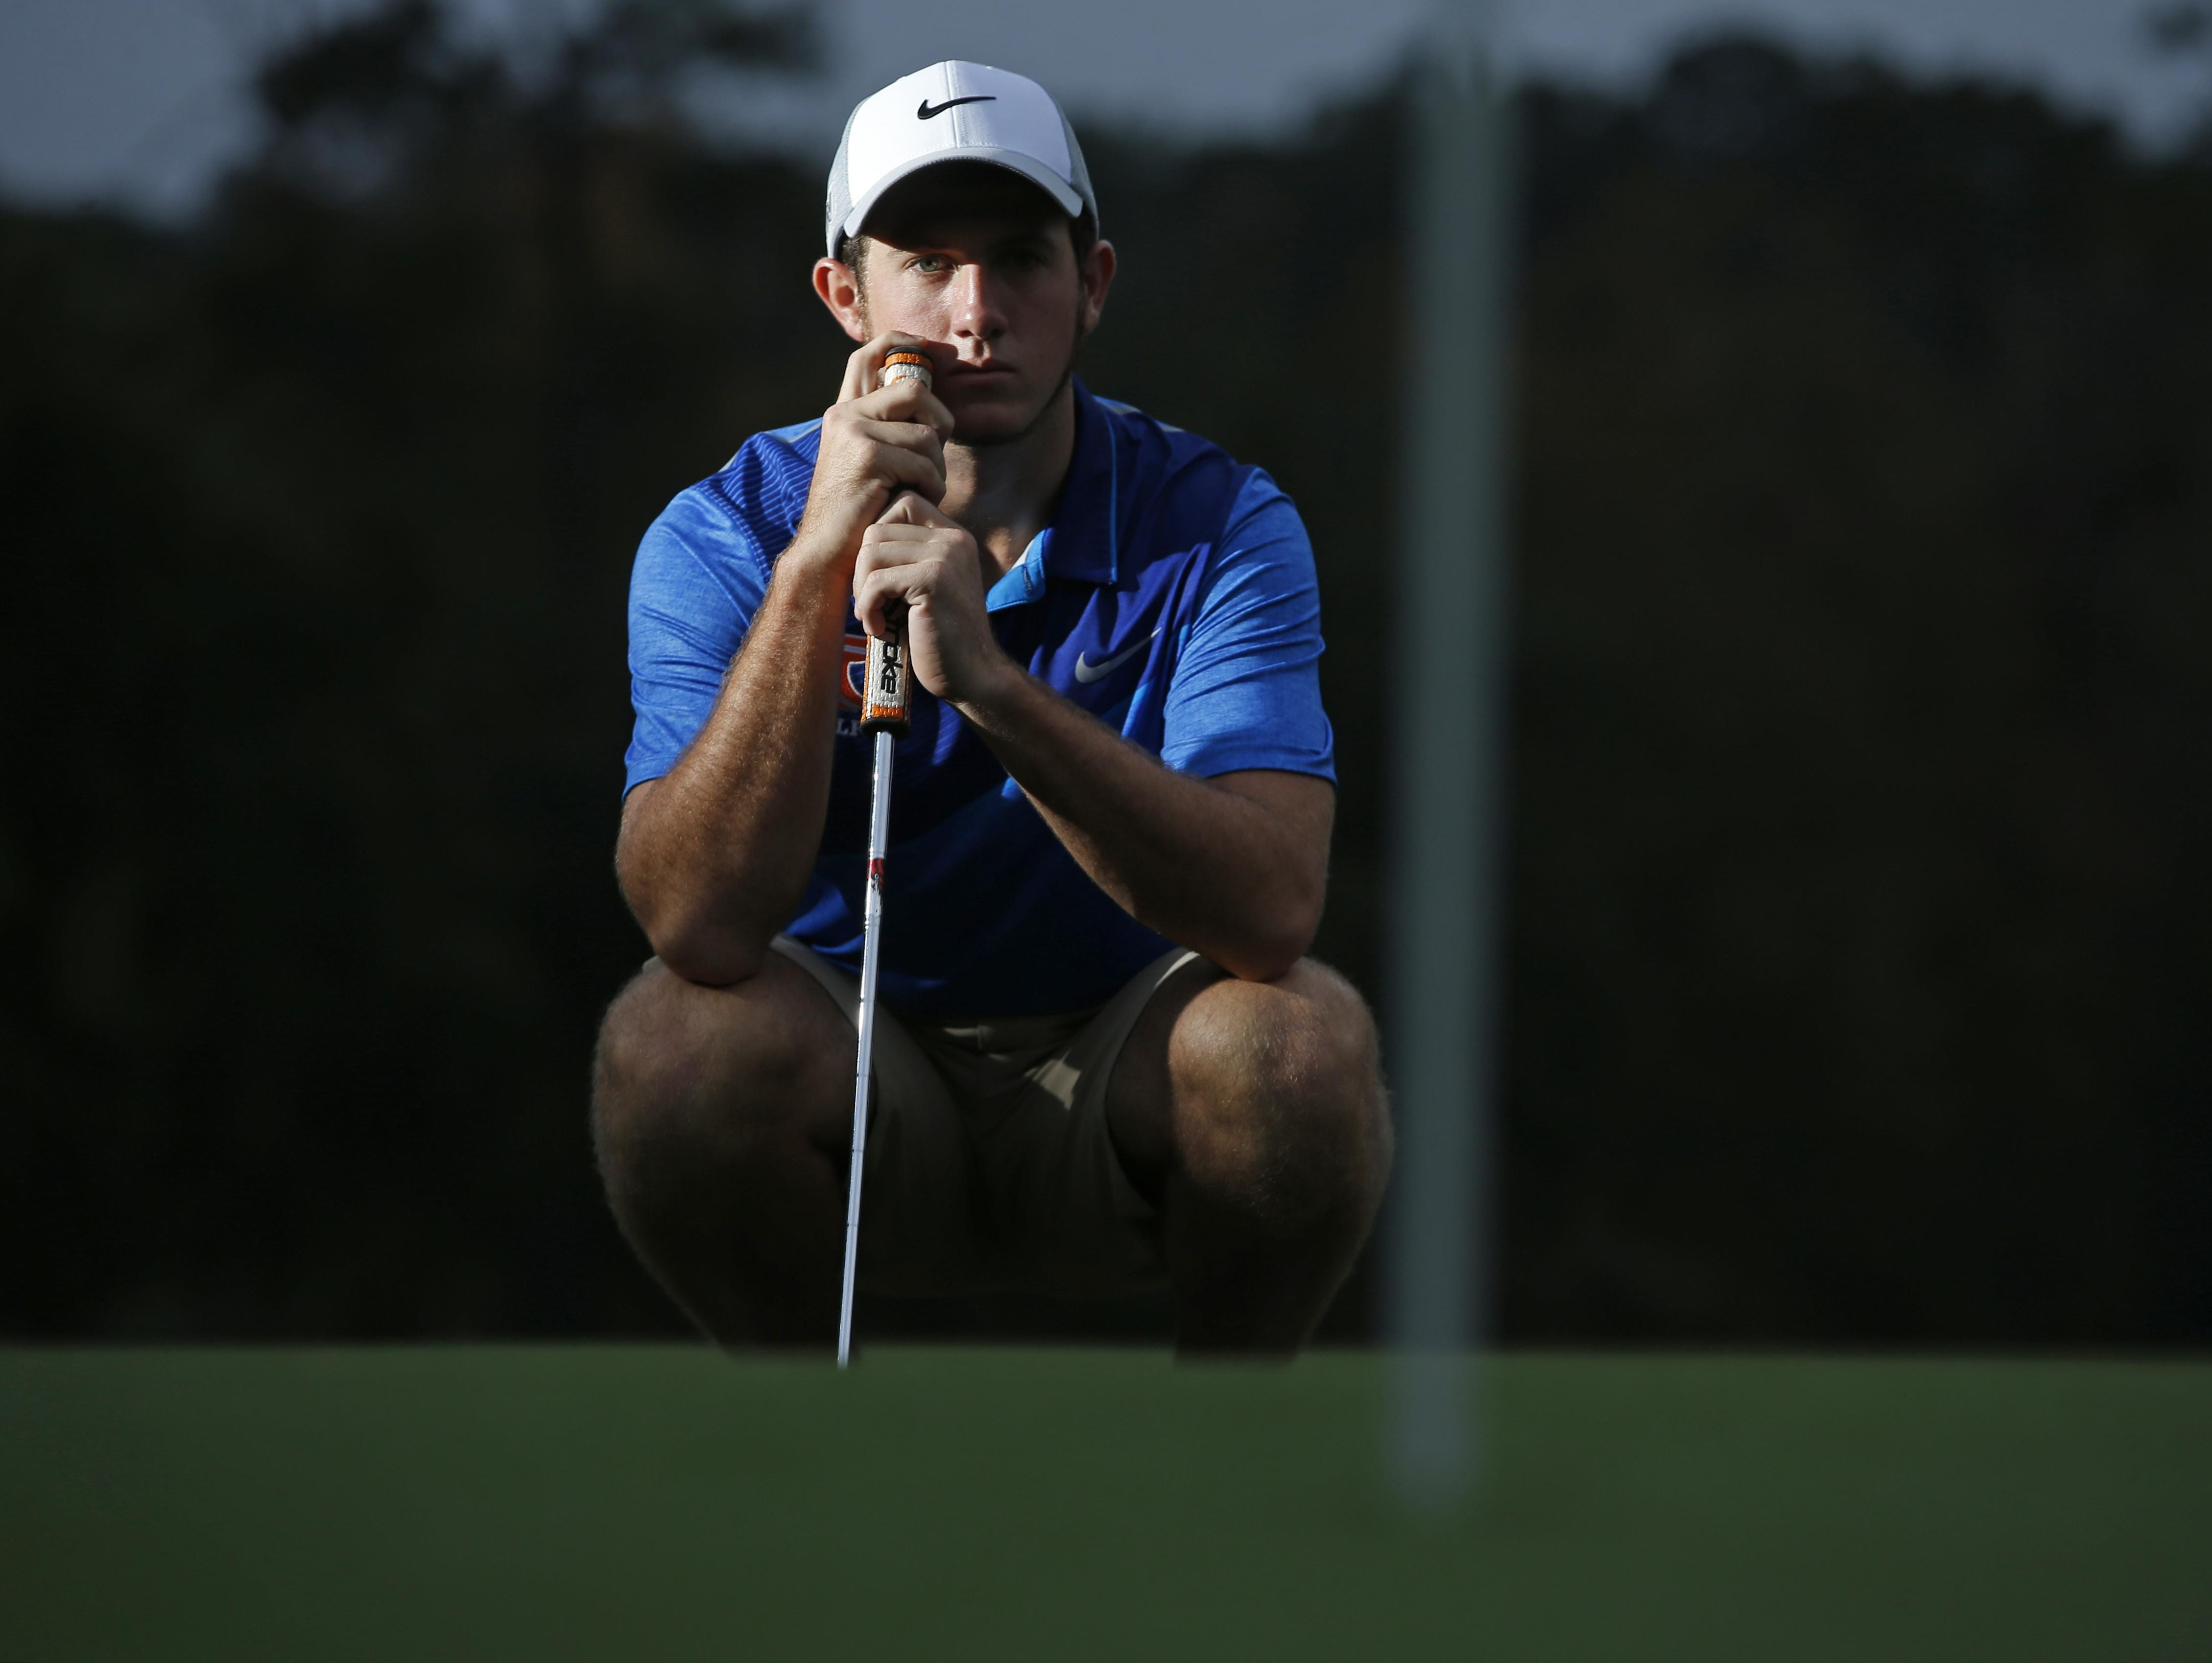 The 2015 All-Big Bend Player of the Year for boys golf is Taylor County senior Cole Wentworth, who won district and regional titles in leading the Bulldogs to team titles in both and the state playoffs, all for the first time in school history.